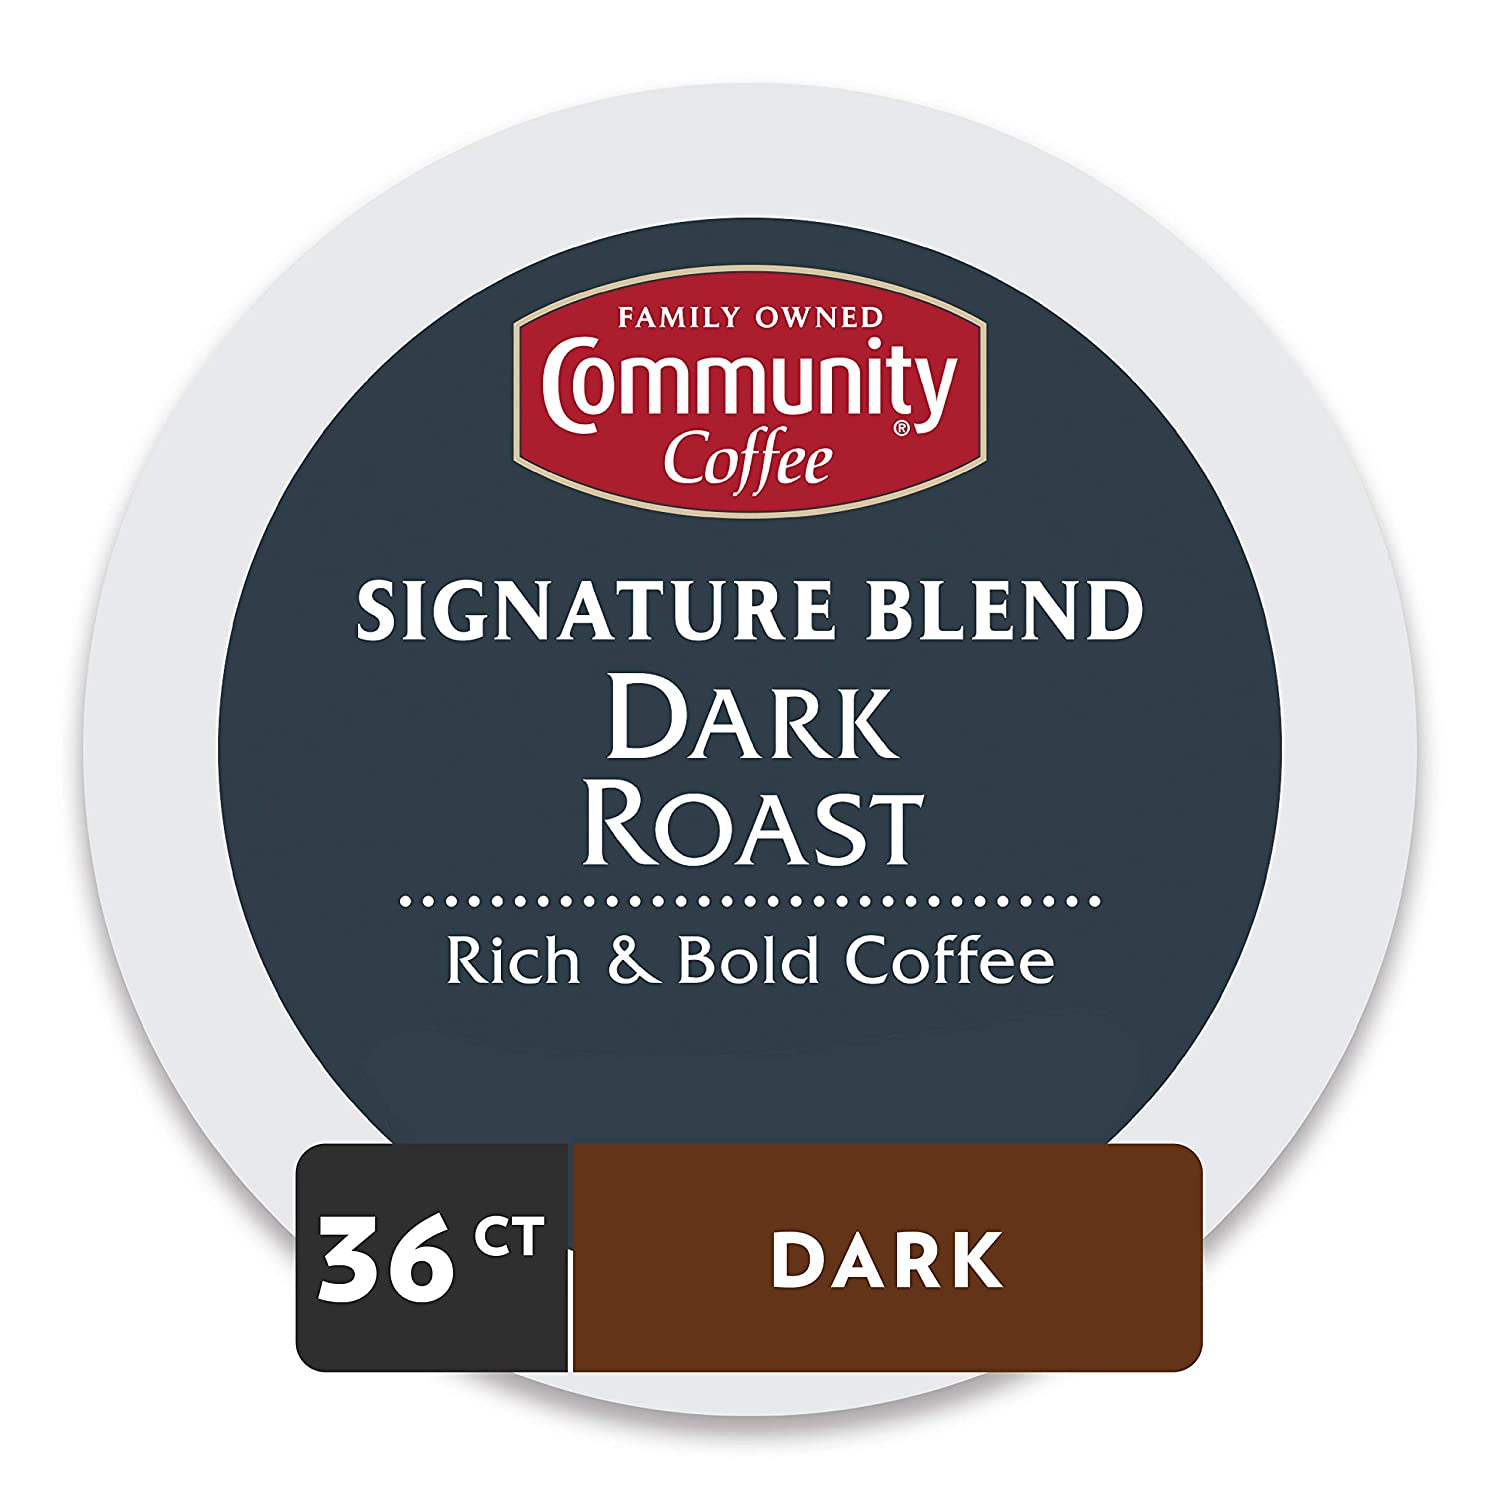 Community Coffee Signature Blend Dark Roast Single Serve, 36 Ct Box, Compatible with Keurig 2.0 K Cup Brewers, Full Body Bold Taste, 100% Arabica Coffee Beans